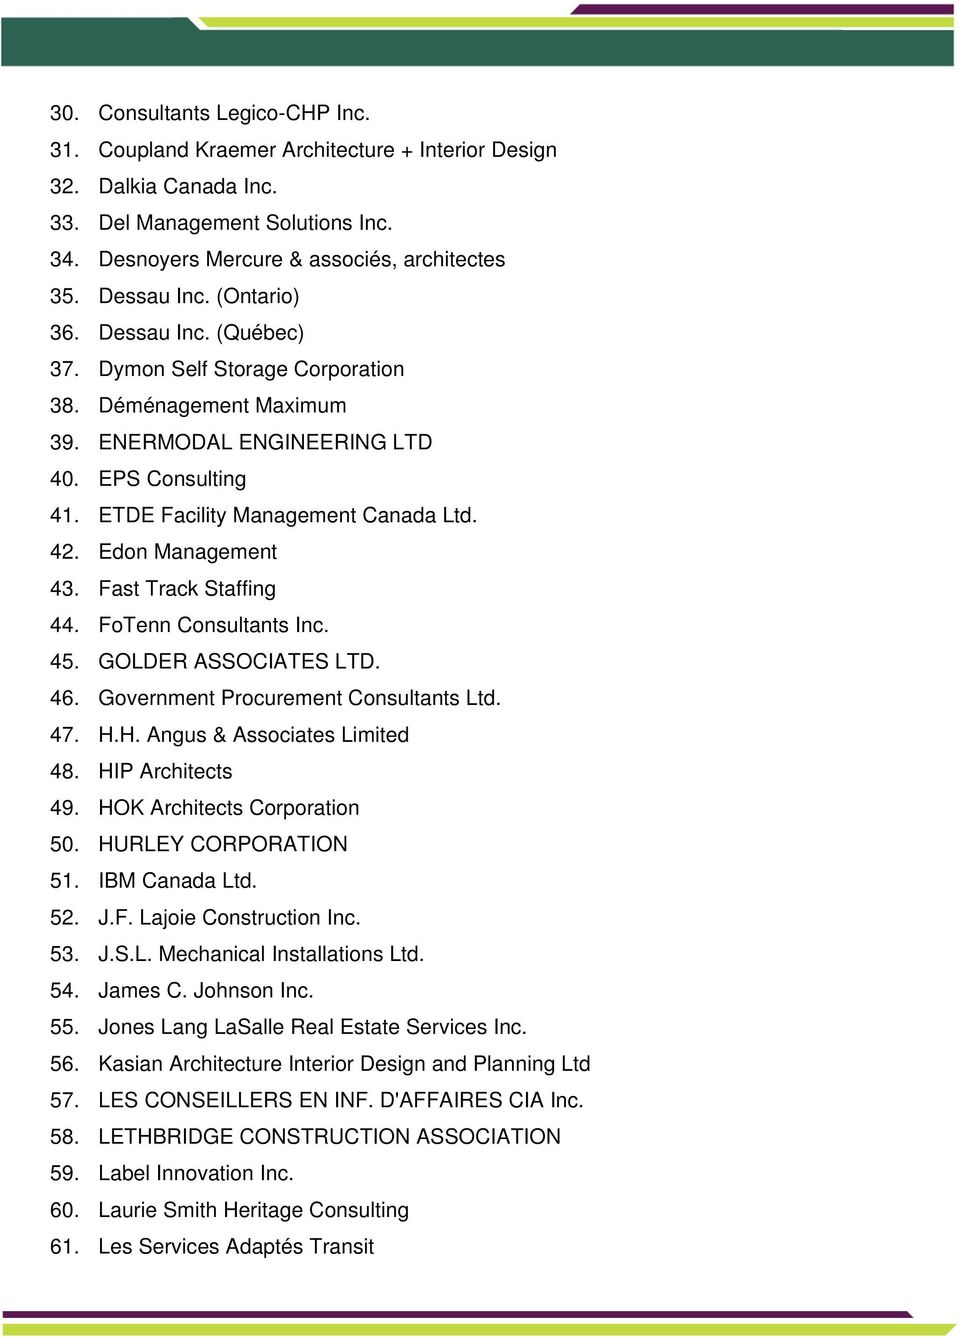 Edon Management 43. Fast Track Staffing 44. FoTenn Consultants Inc. 45. GOLDER ASSOCIATES LTD. 46. Government Procurement Consultants Ltd. 47. H.H. Angus & Associates Limited 48. HIP Architects 49.